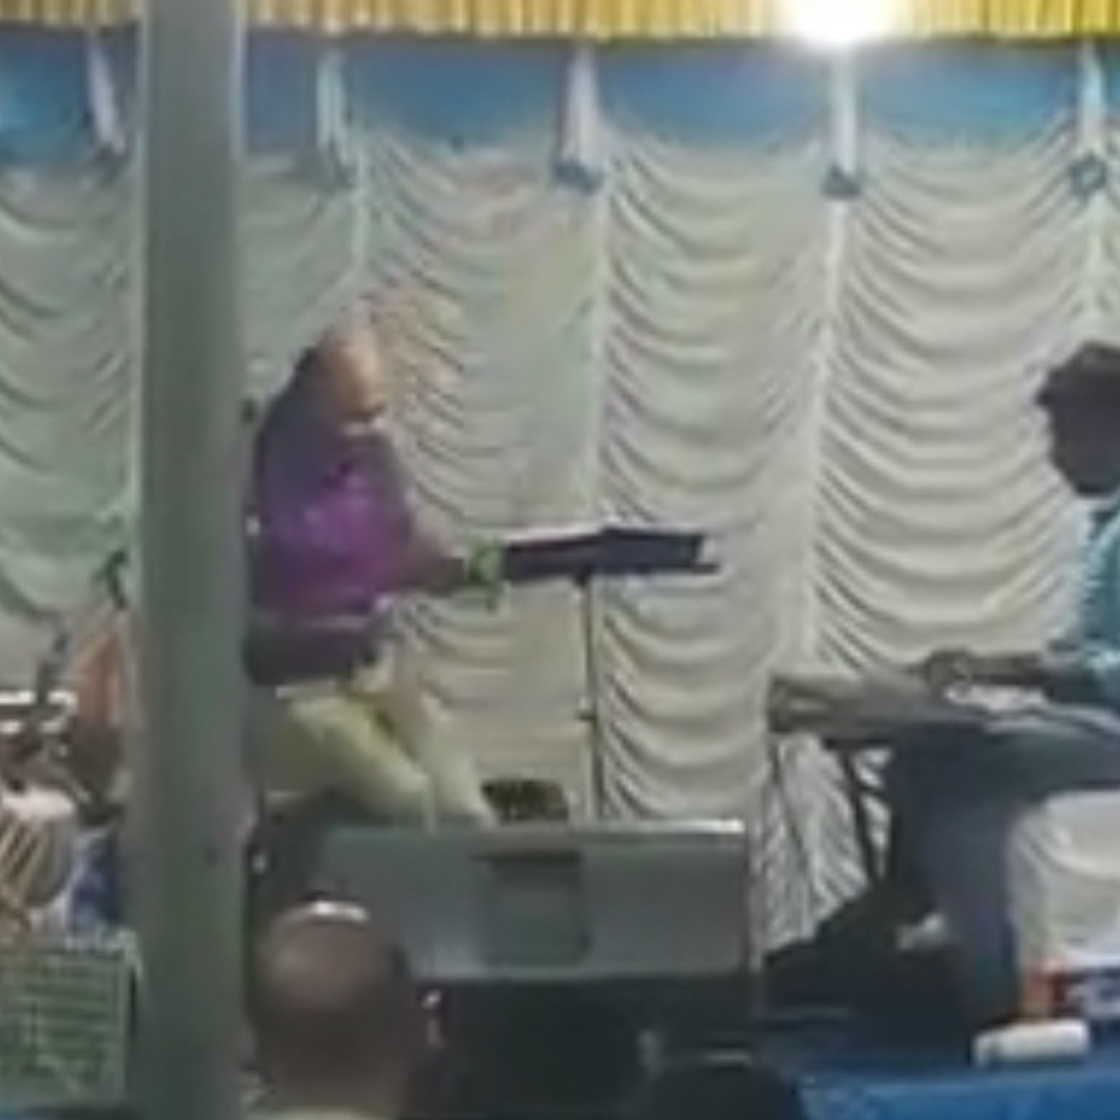 26 MAY 2019 :  P. VISHNUPRASAD  of Kerala, India, collapsed onstage on the eve of his daughter's wedding, while performing 'Raakili Ponmagale' - sung by a father for his daughter in the hit Malayalam film 'Amaram.' He was fifty-five.